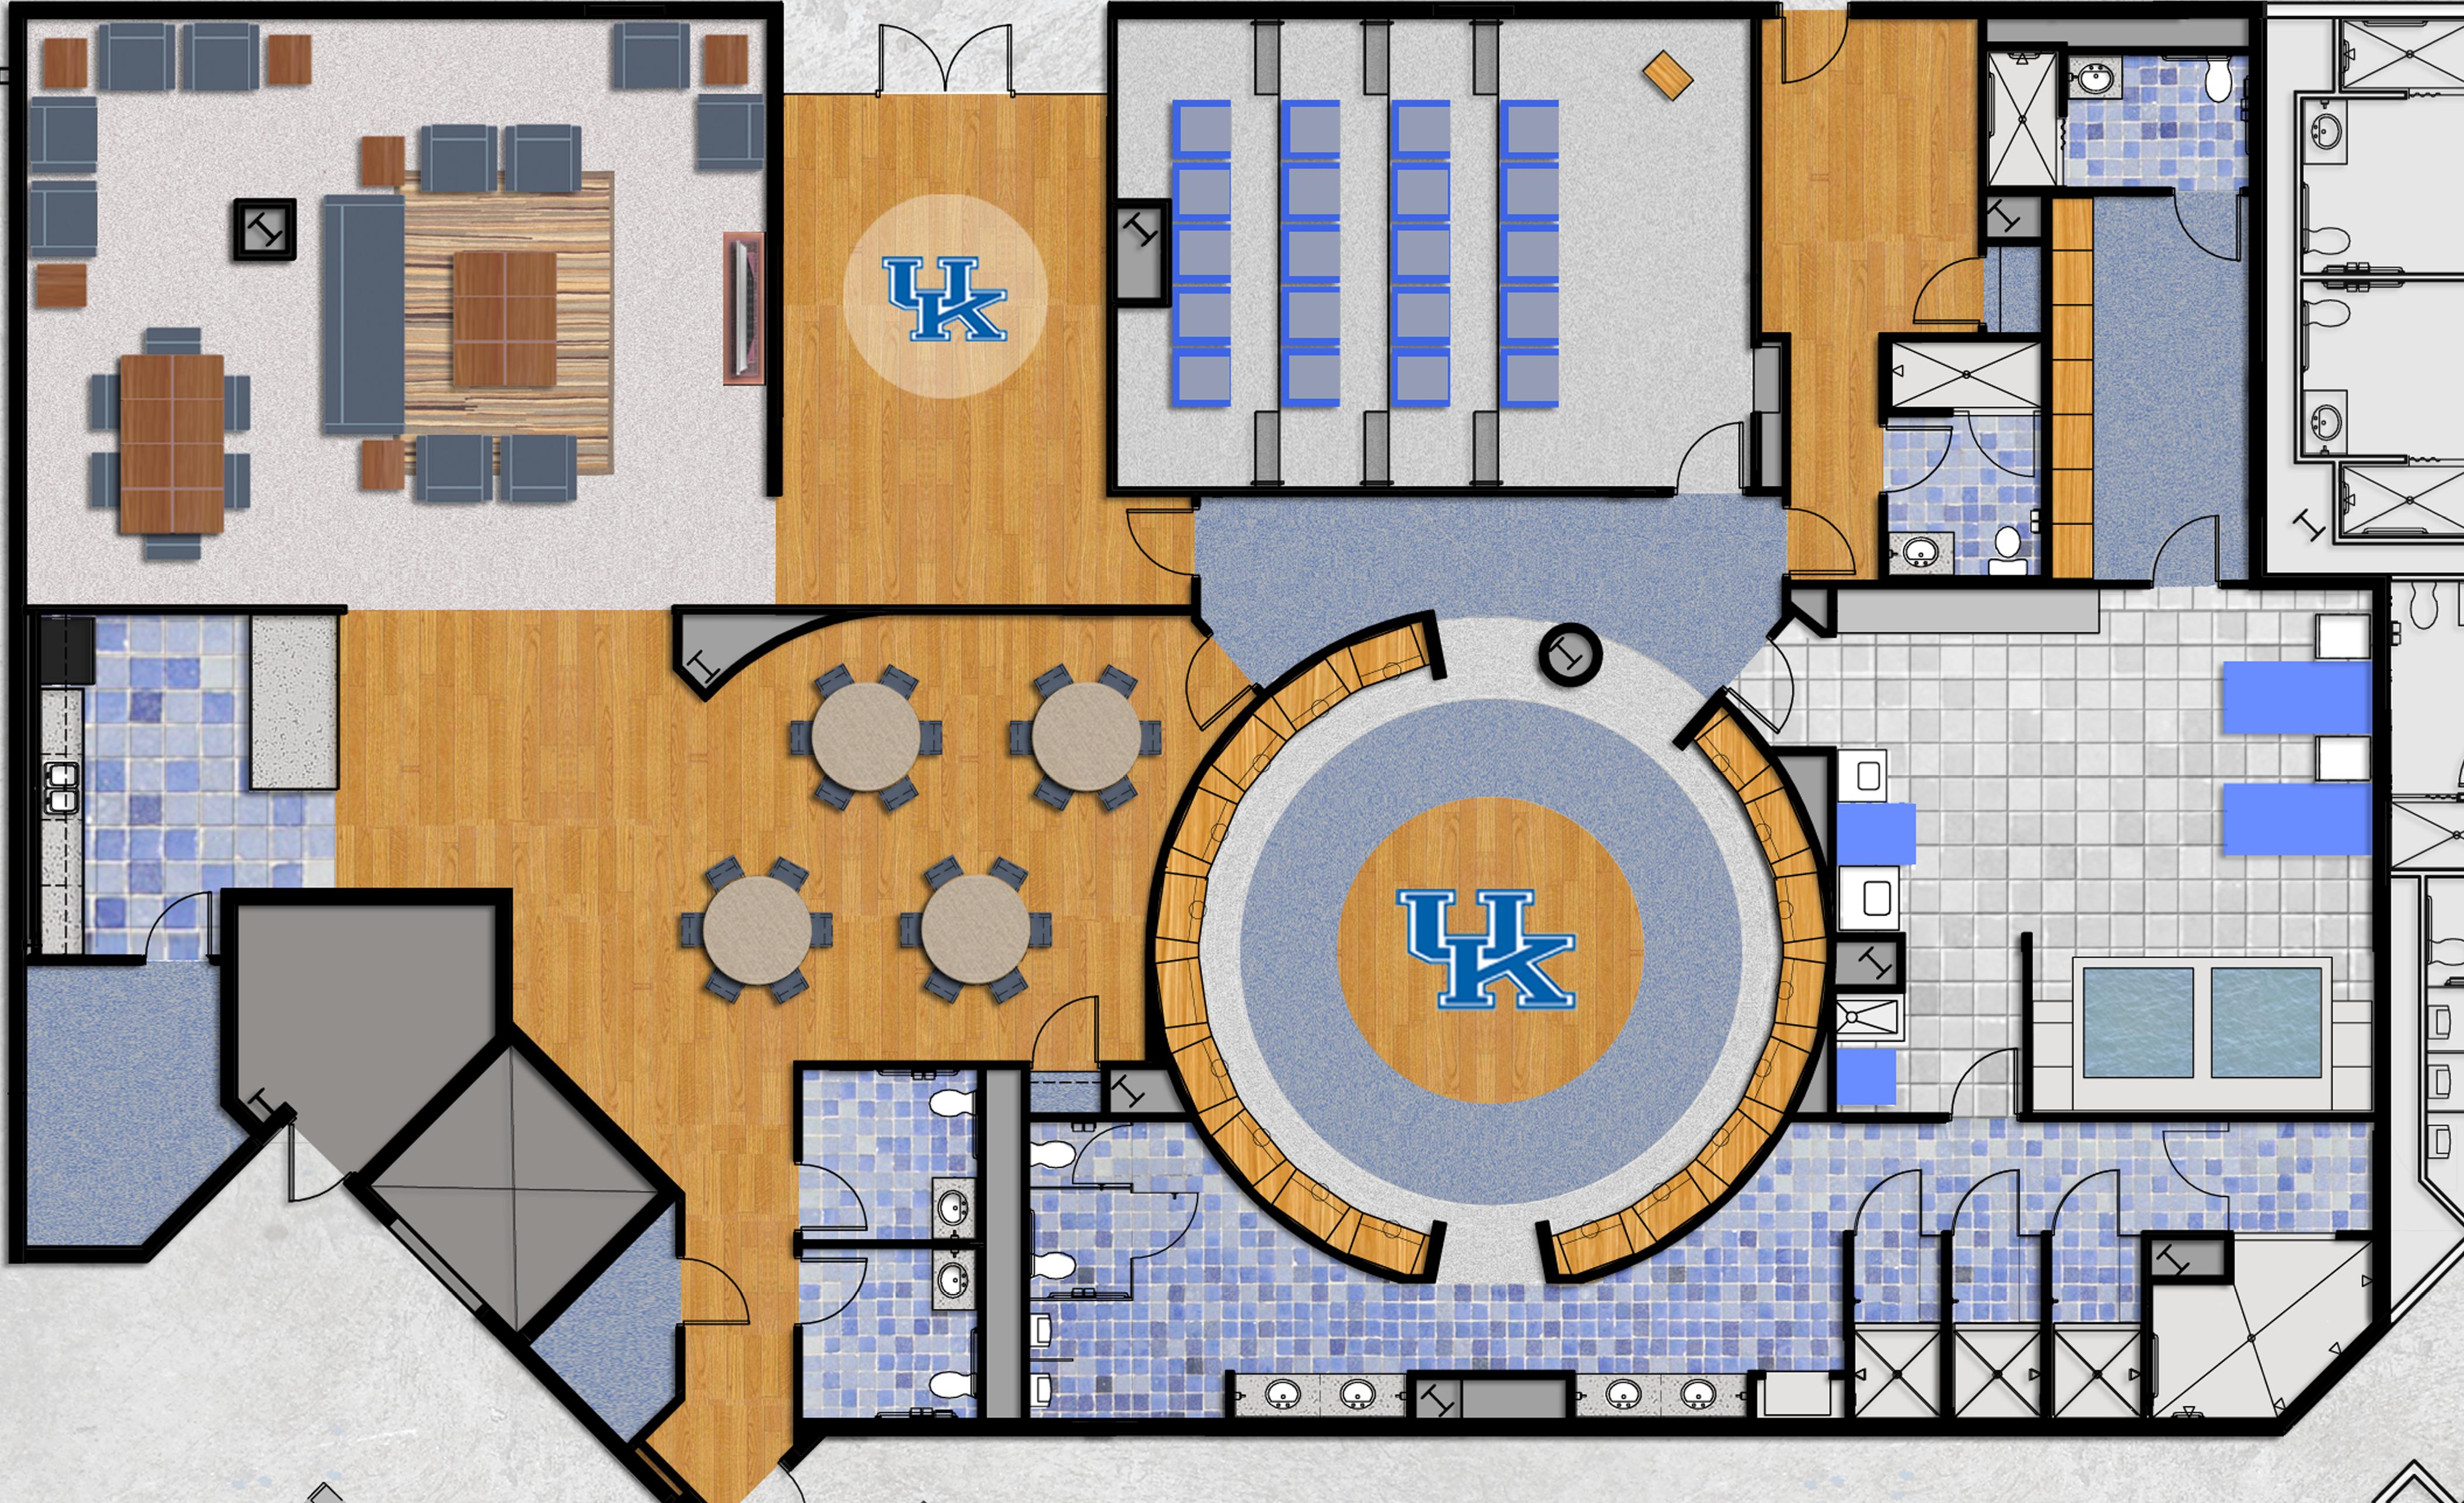 The big blueprint our locker room plans for rupp arena coach cal coach cal malvernweather Gallery